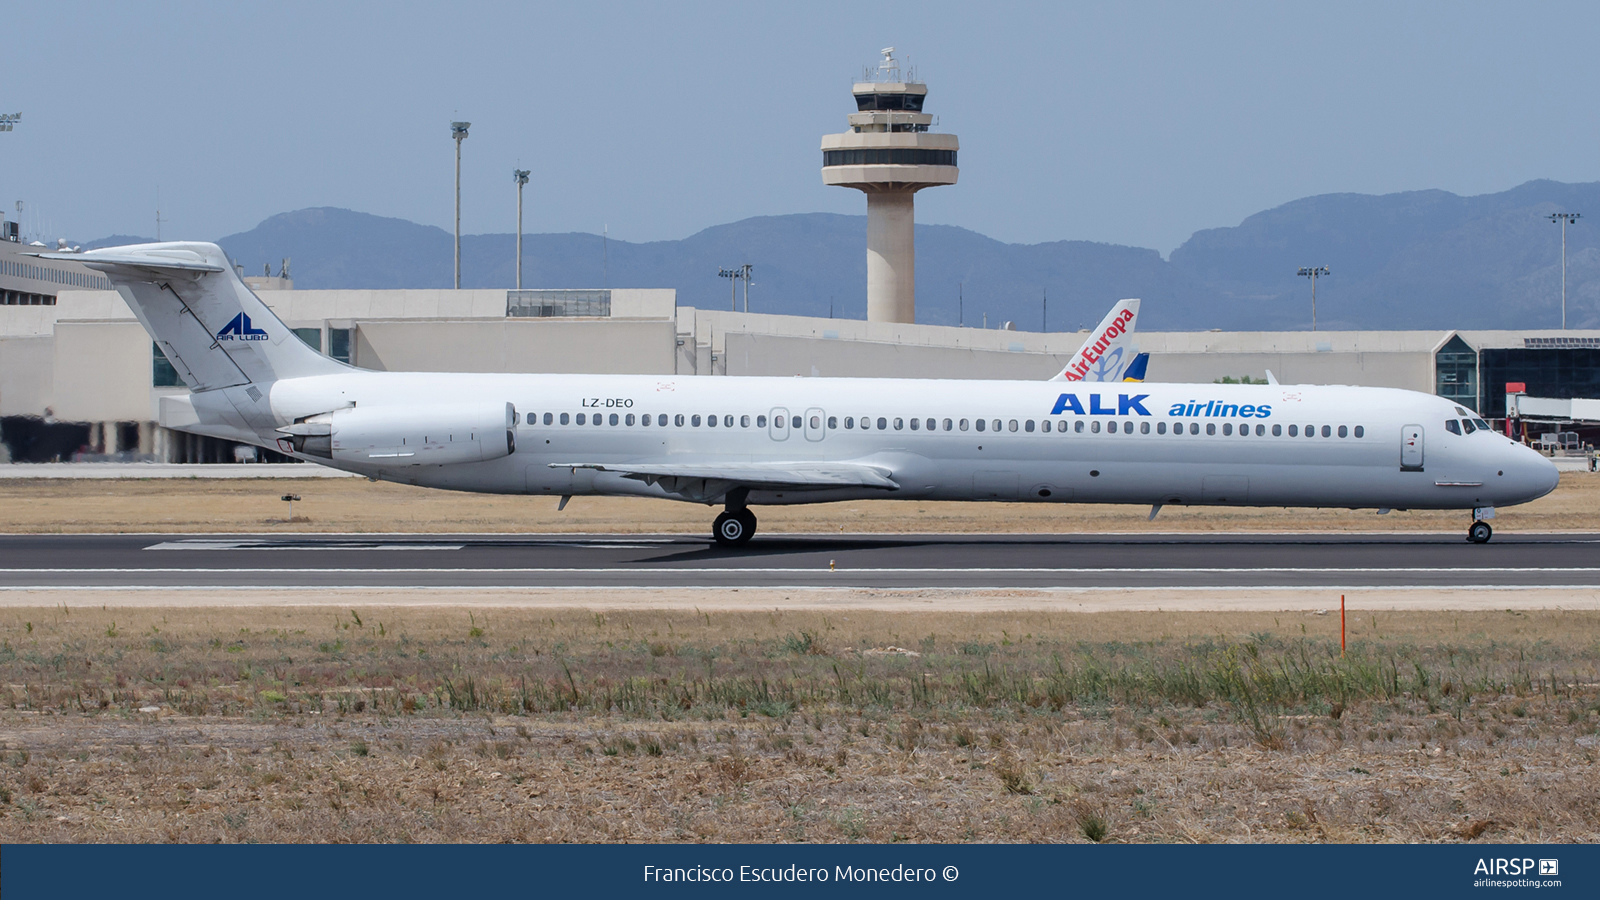 ALK AirlinesMD-82LZ-DEO